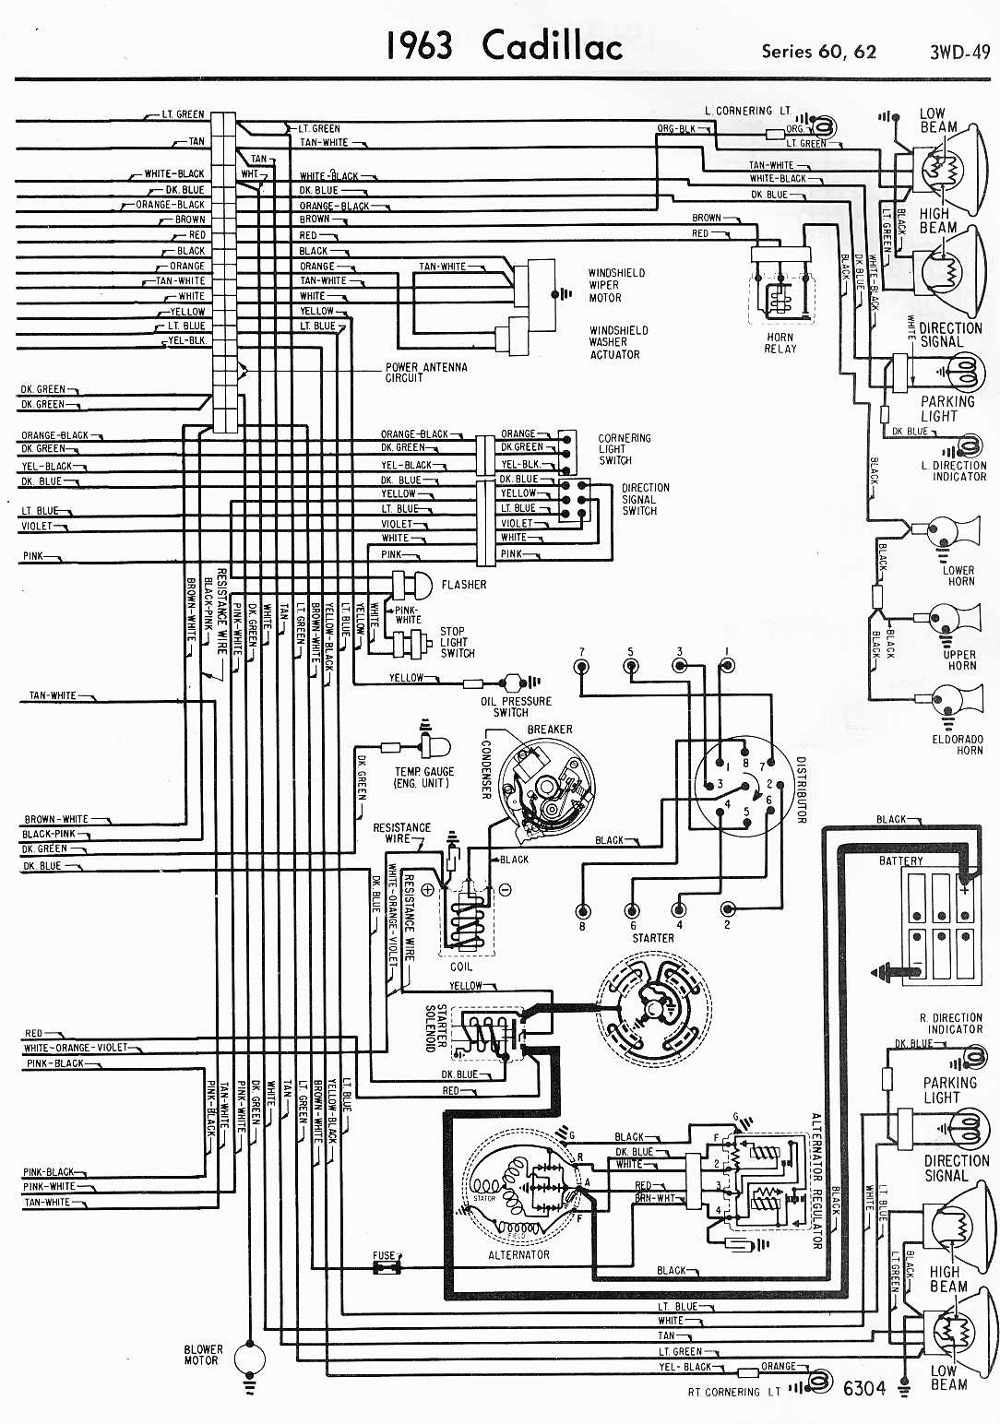 Wiring       Diagrams    schematics 1963    Cadillac    Series 60 And 62 Part 2      wiring       diagram       schematic